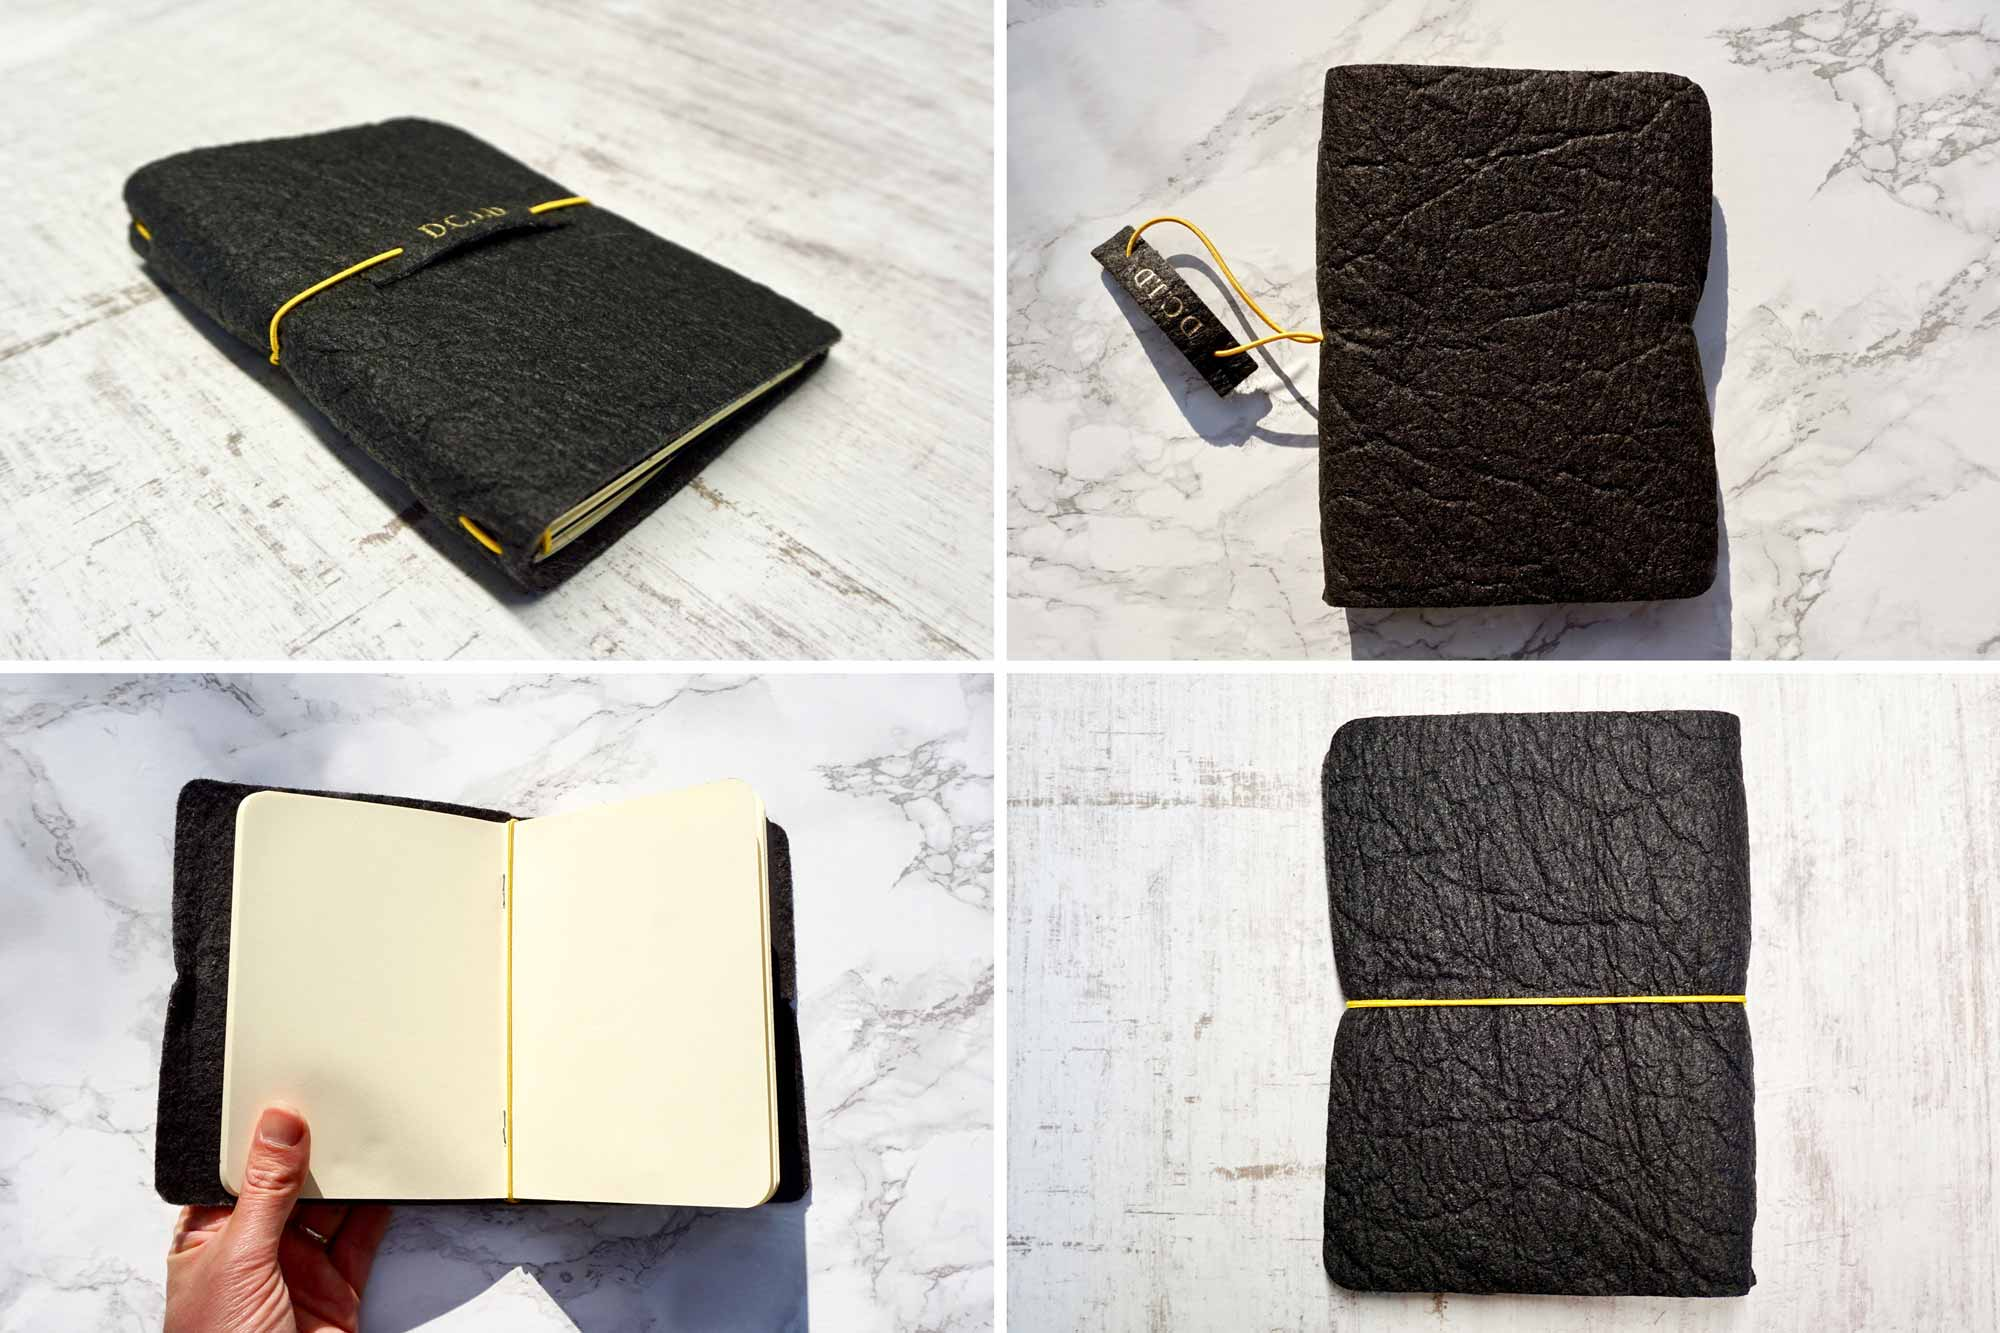 Black Vegan Leather Journal made from Pinatex Pineapple leather from Bookshell Bindery, a great sustainable gift with blank pages